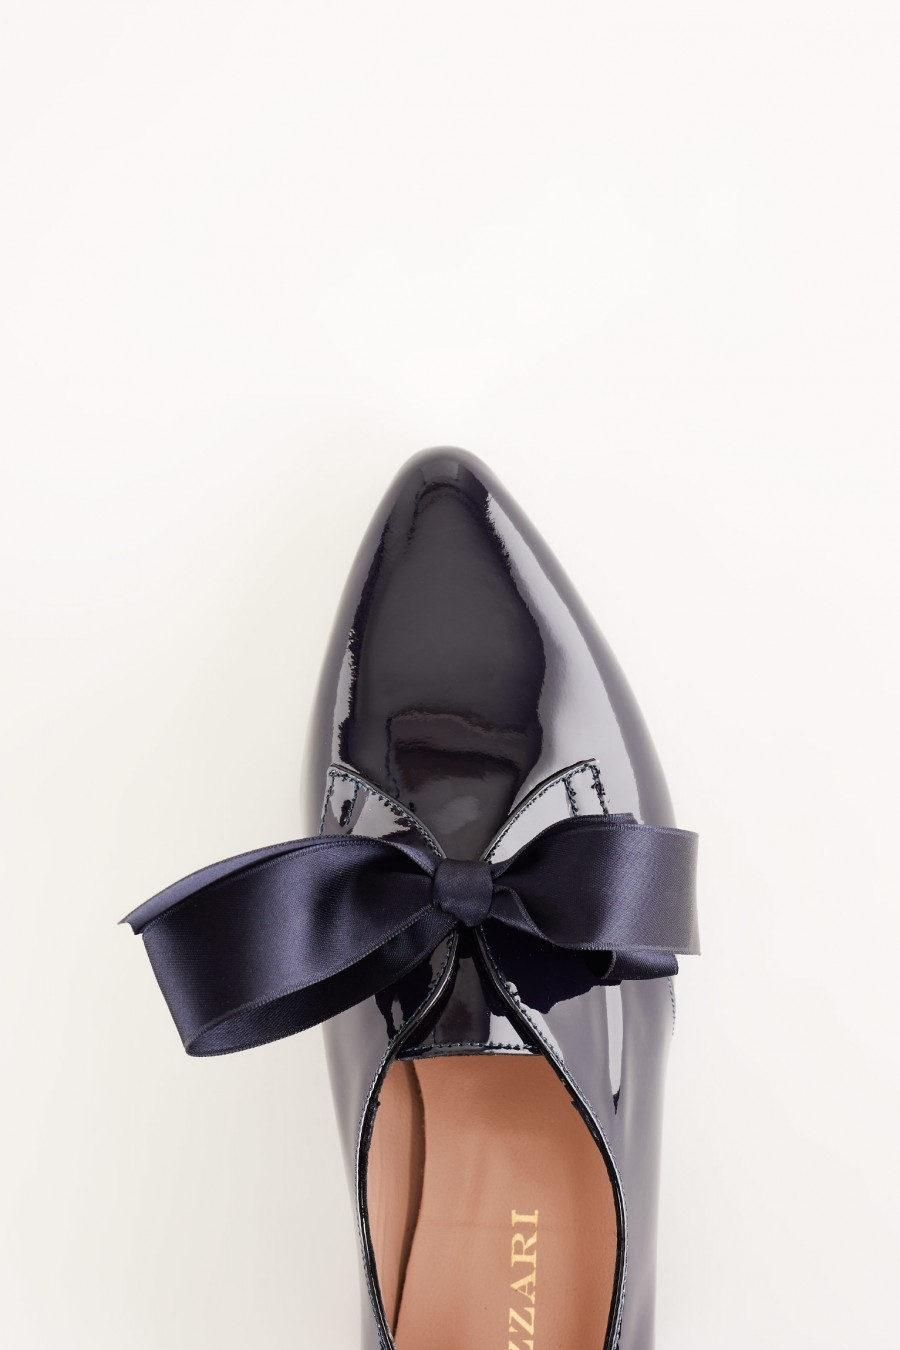 flats with satin bow